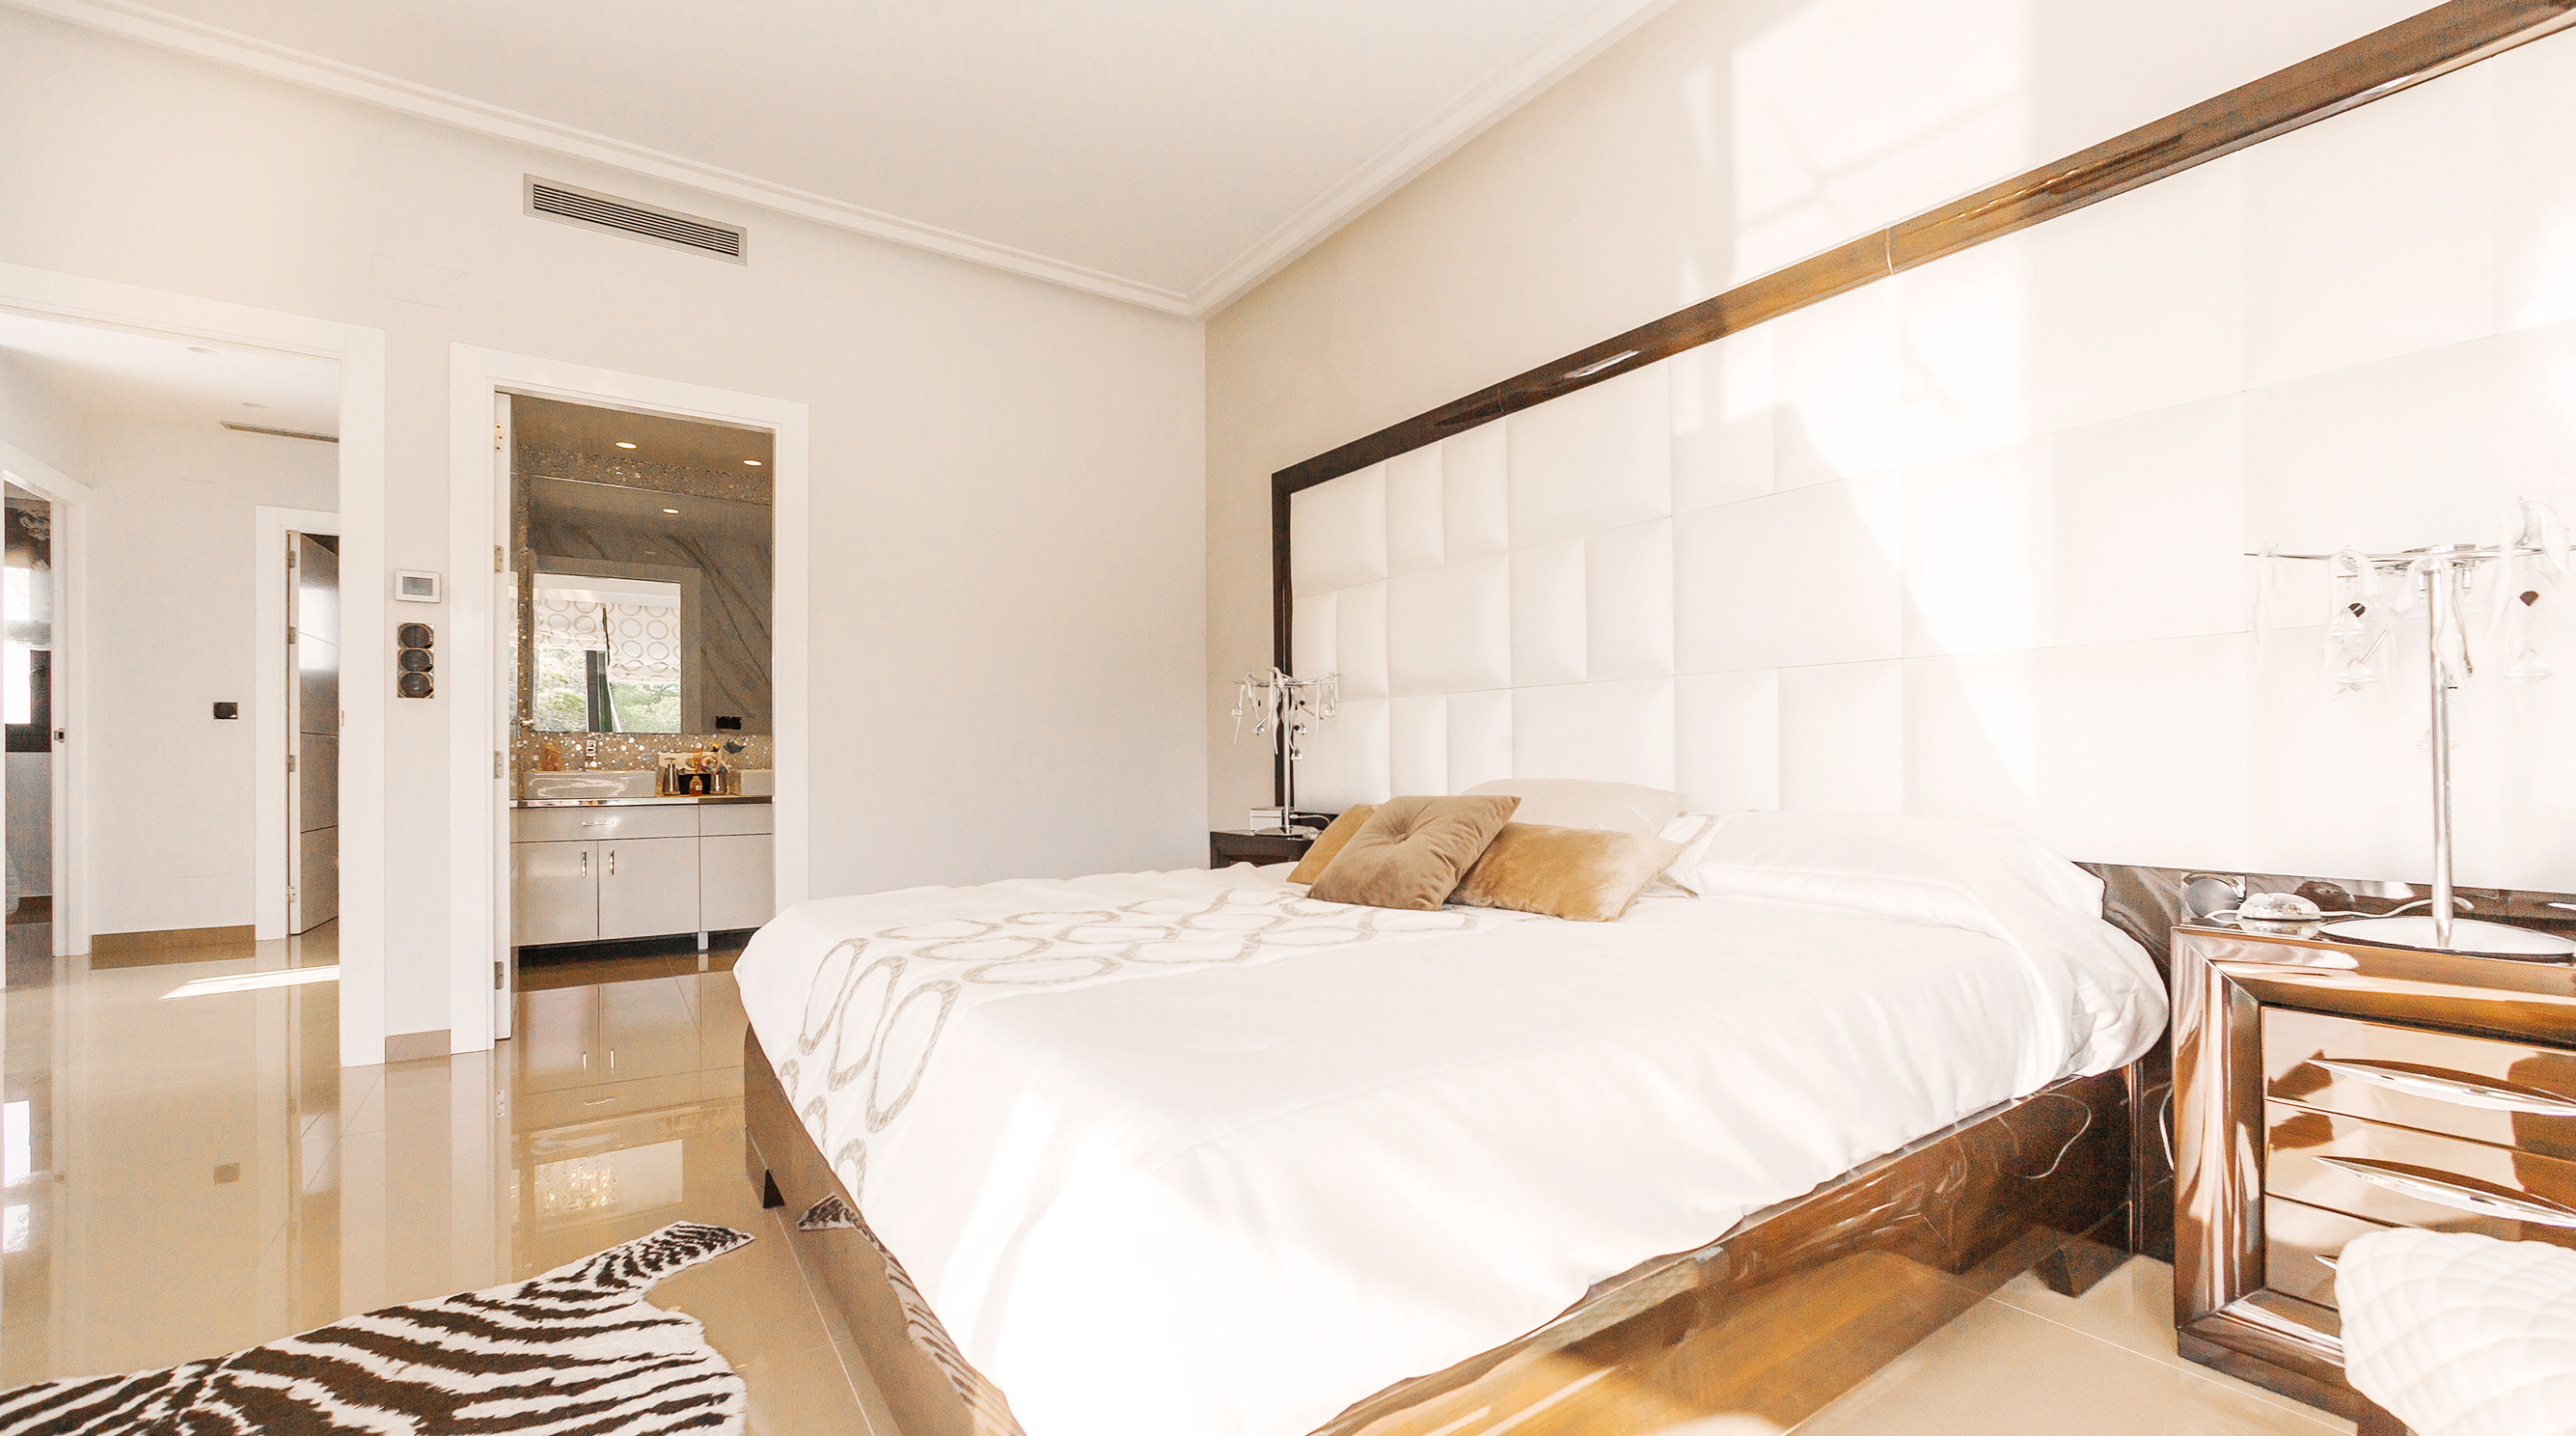 Large bed with white comforter in room